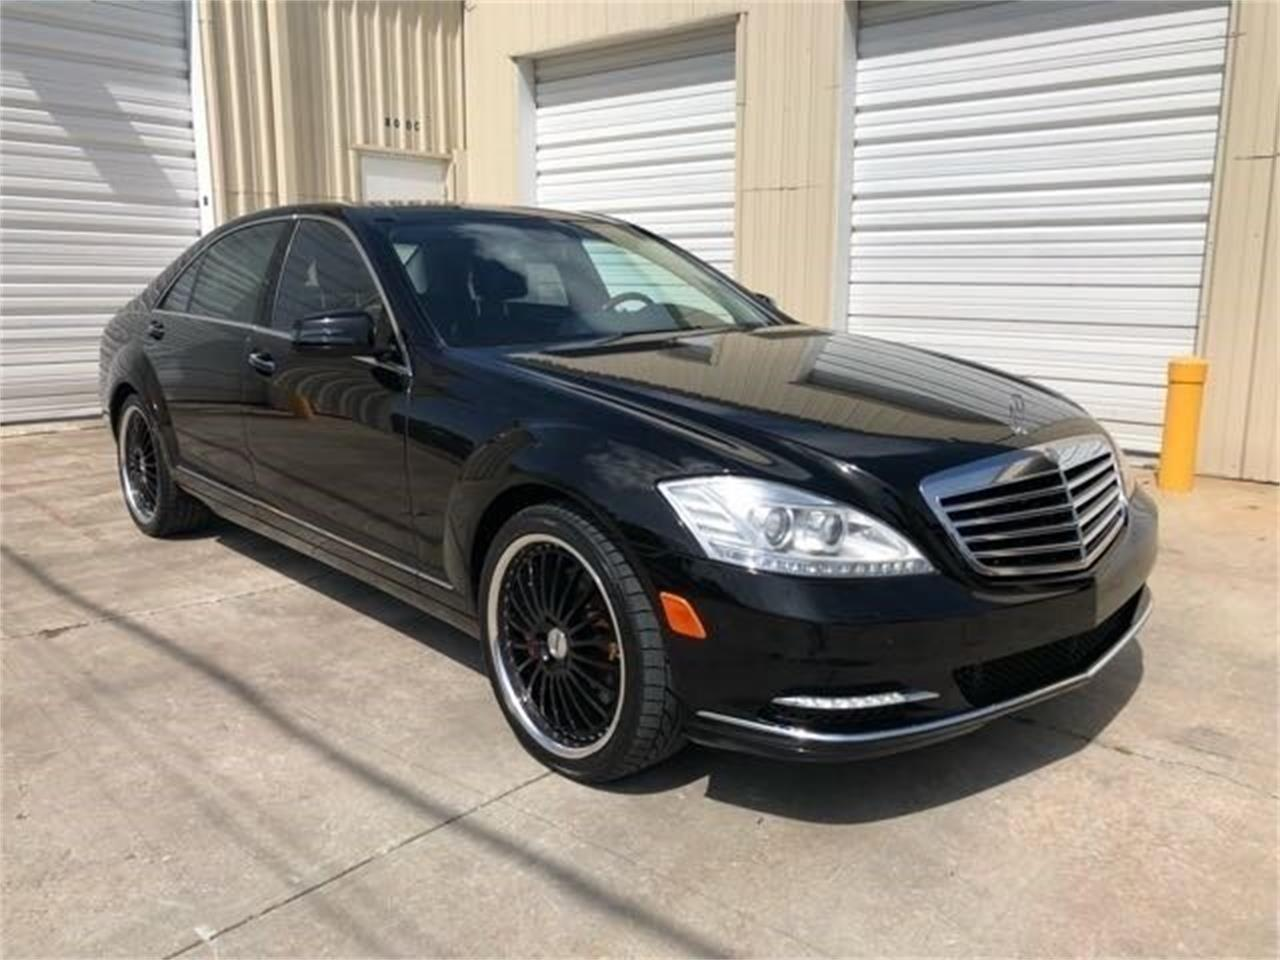 Large Picture of 2010 Mercedes-Benz S550 located in Holly Hill Florida - $17,900.00 Offered by A7 Auto Sales - PWA6